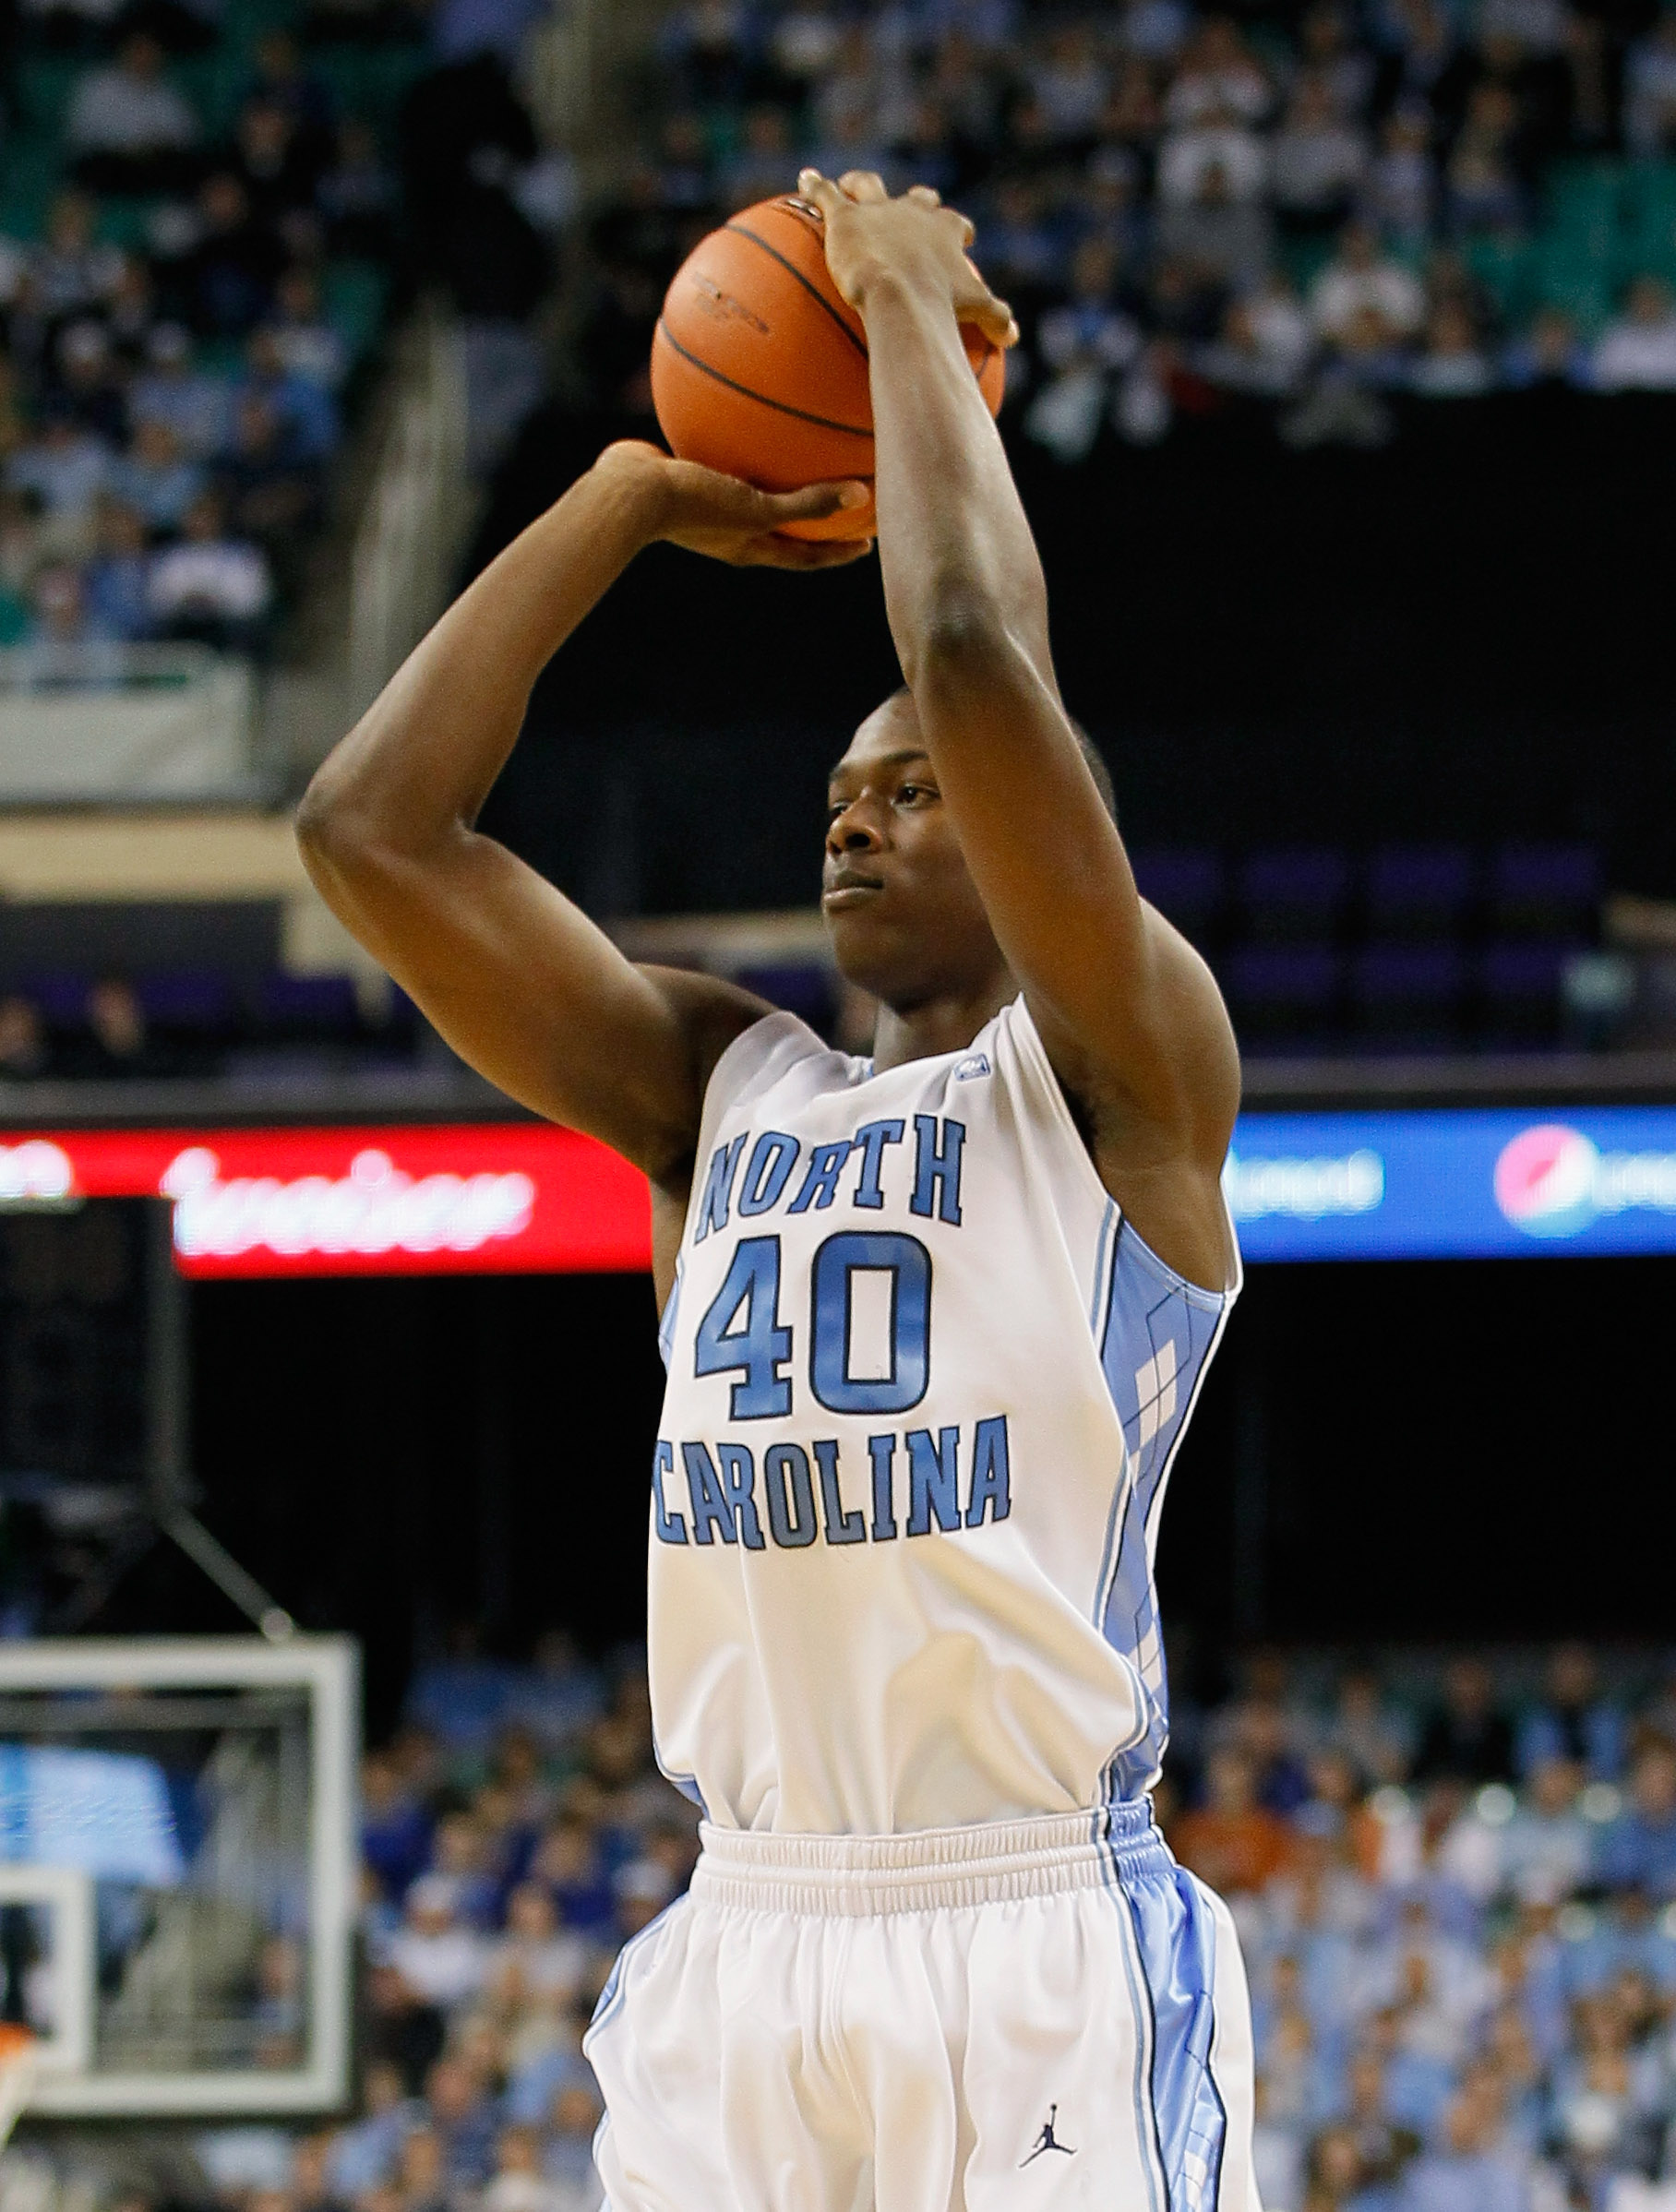 GREENSBORO, NC - DECEMBER 18:  Harrison Barnes #40 of the North Carolina Tar Heels against the Texas Longhorns at Greensboro Coliseum on December 18, 2010 in Greensboro, North Carolina.  (Photo by Kevin C. Cox/Getty Images)